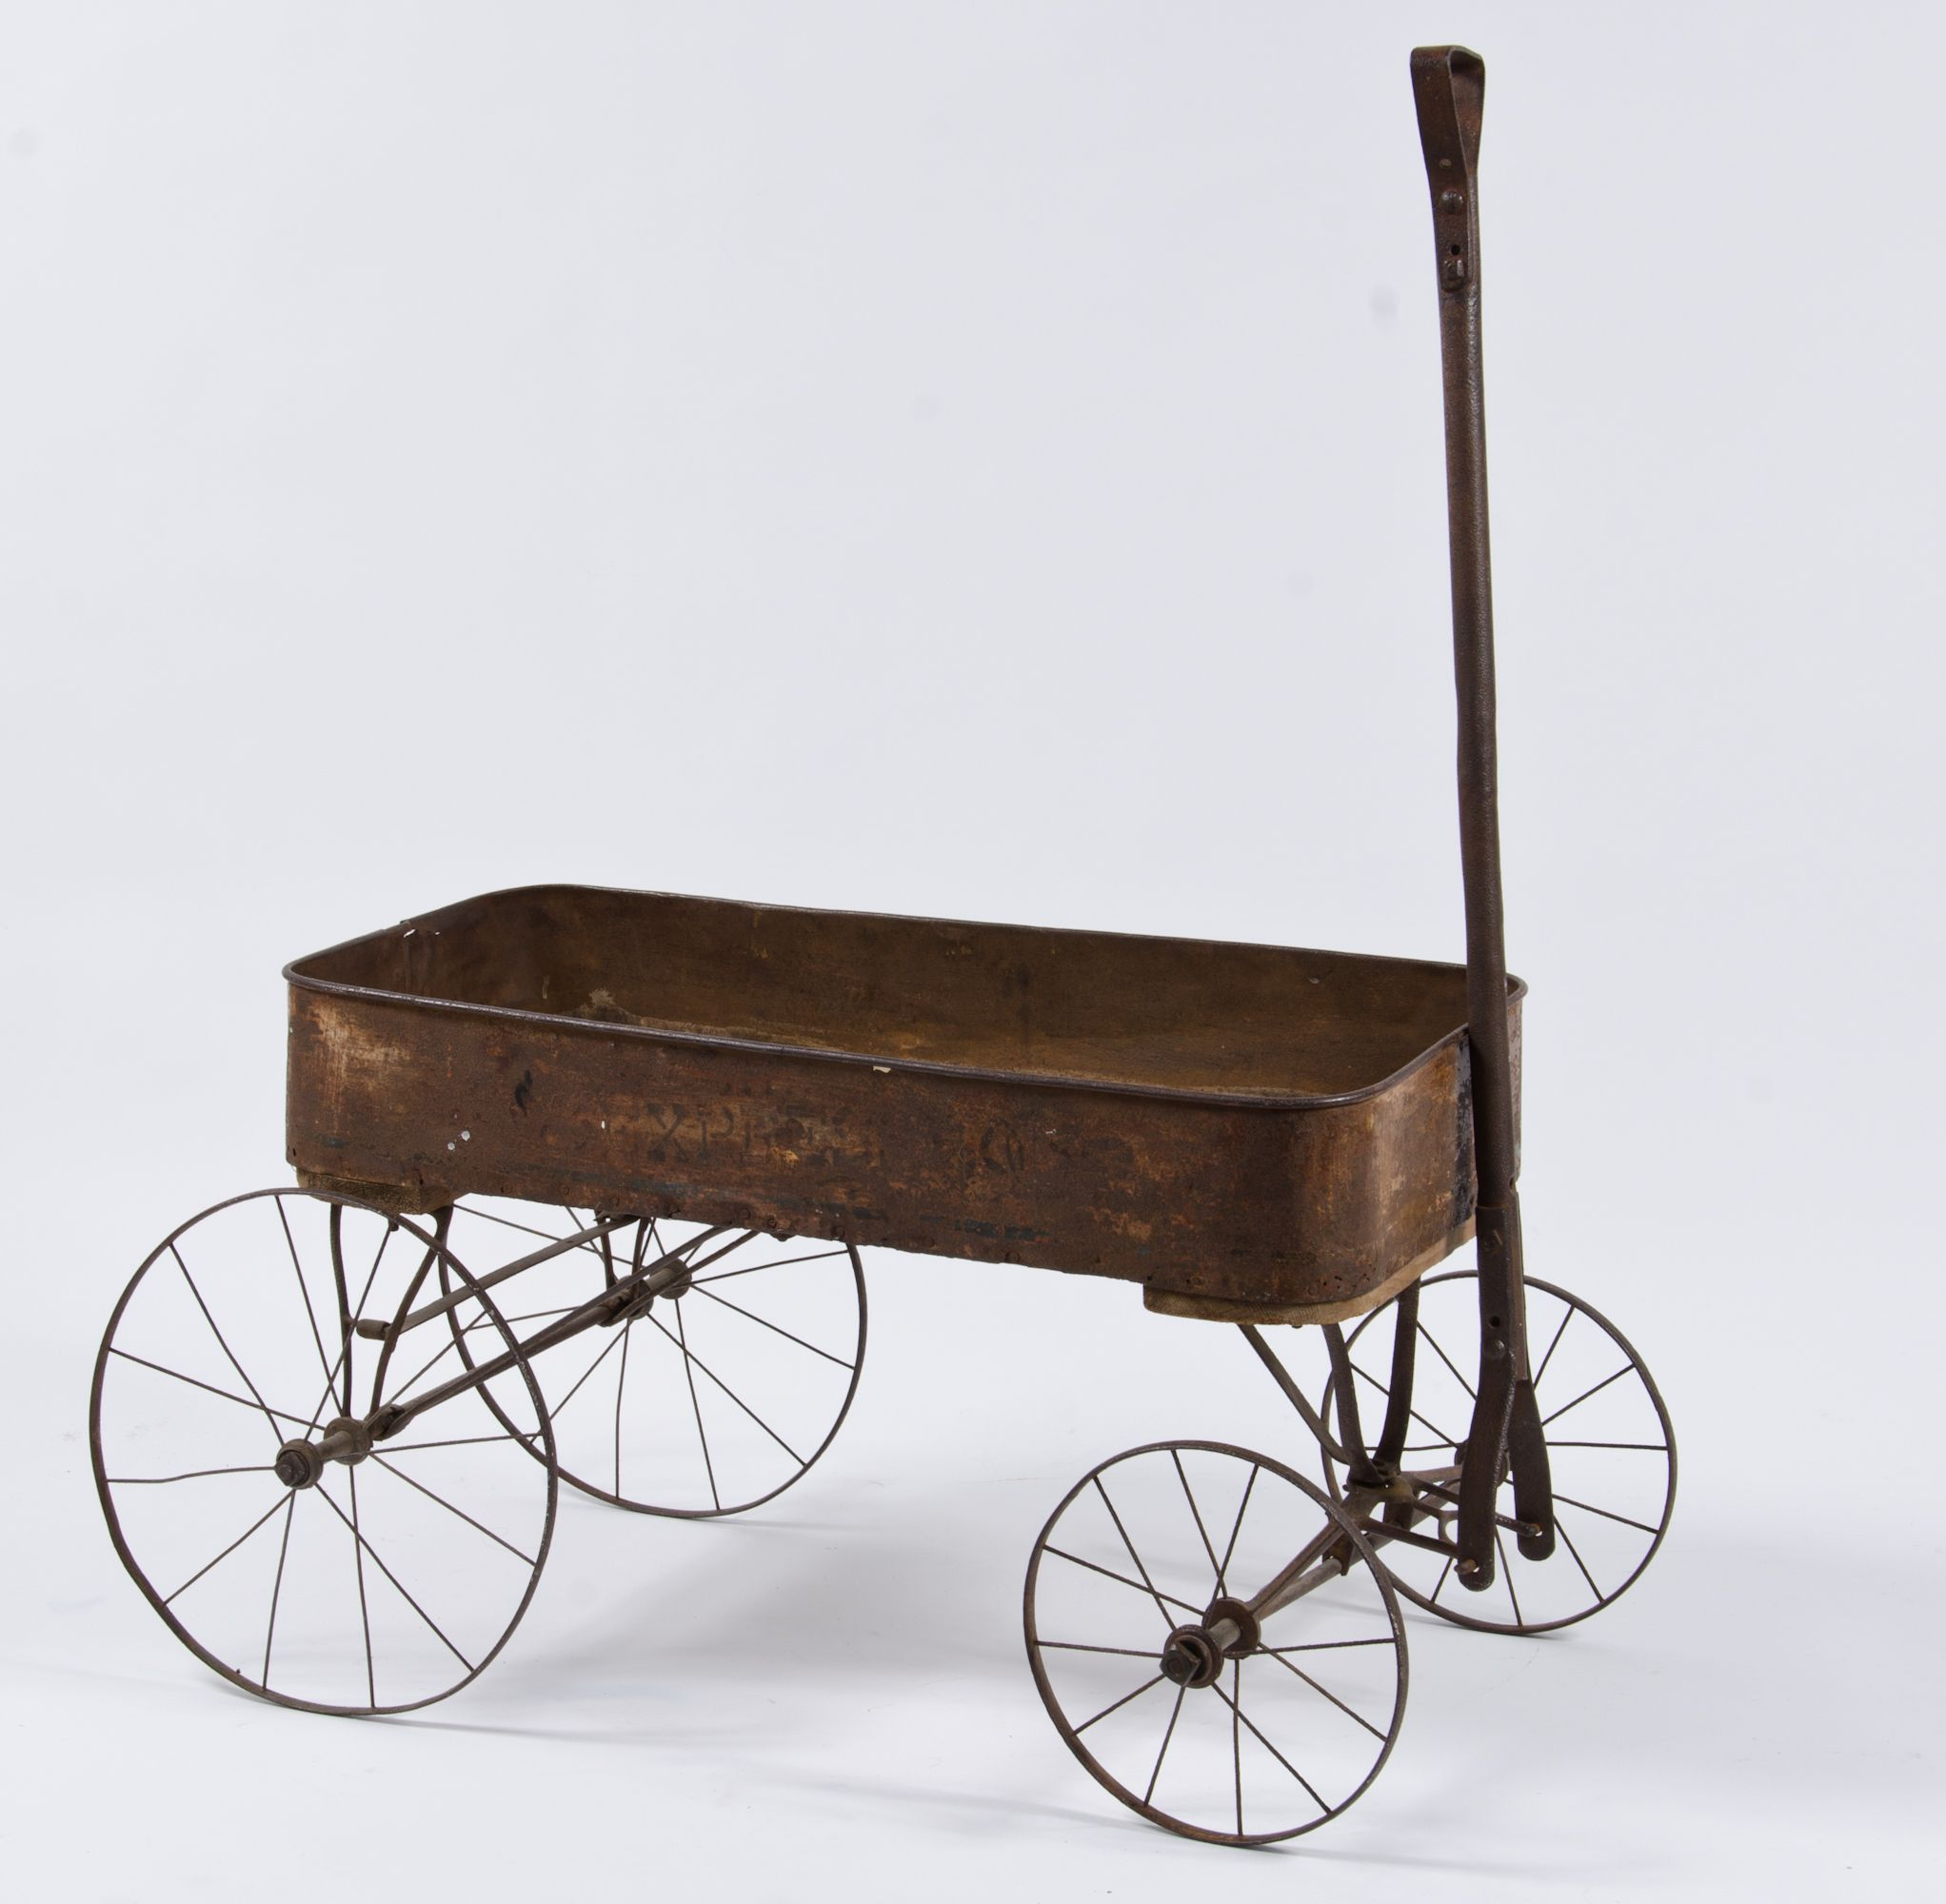 vintage wagons   1920s Vintage Gendron Wagon   Second Shout Out ...